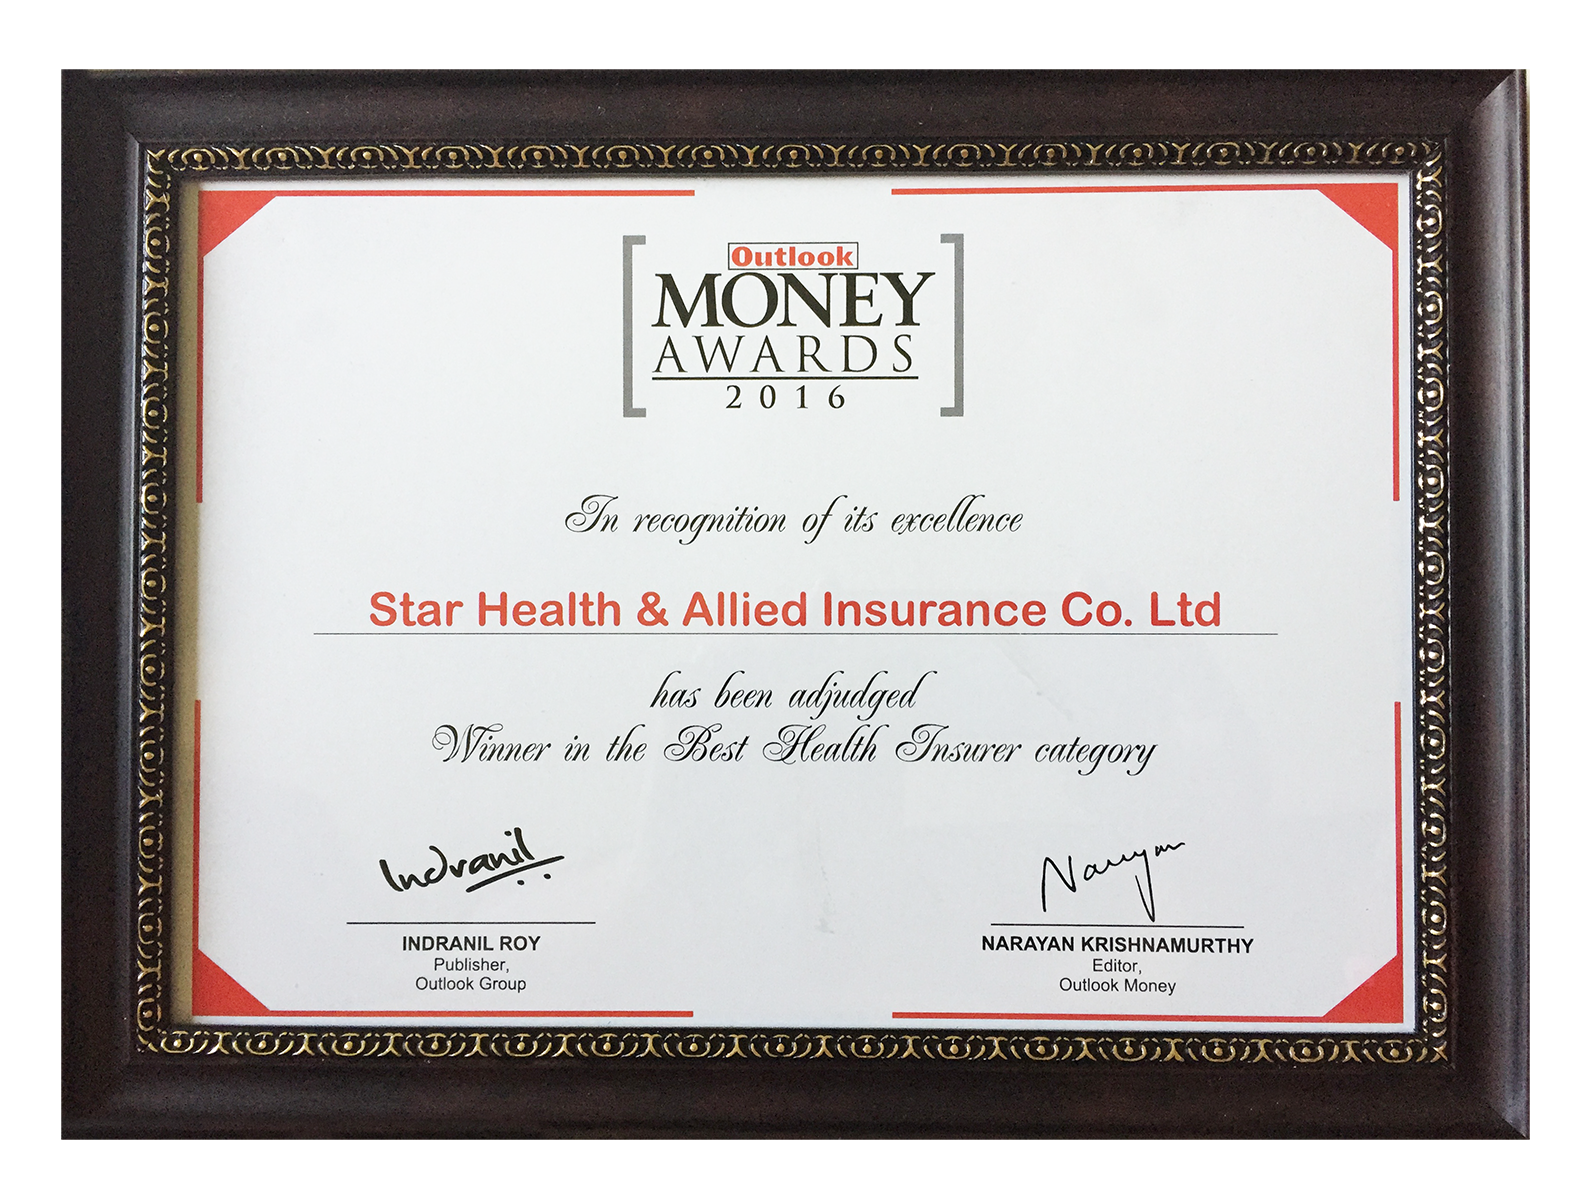 Our awards starhealth view image xflitez Choice Image